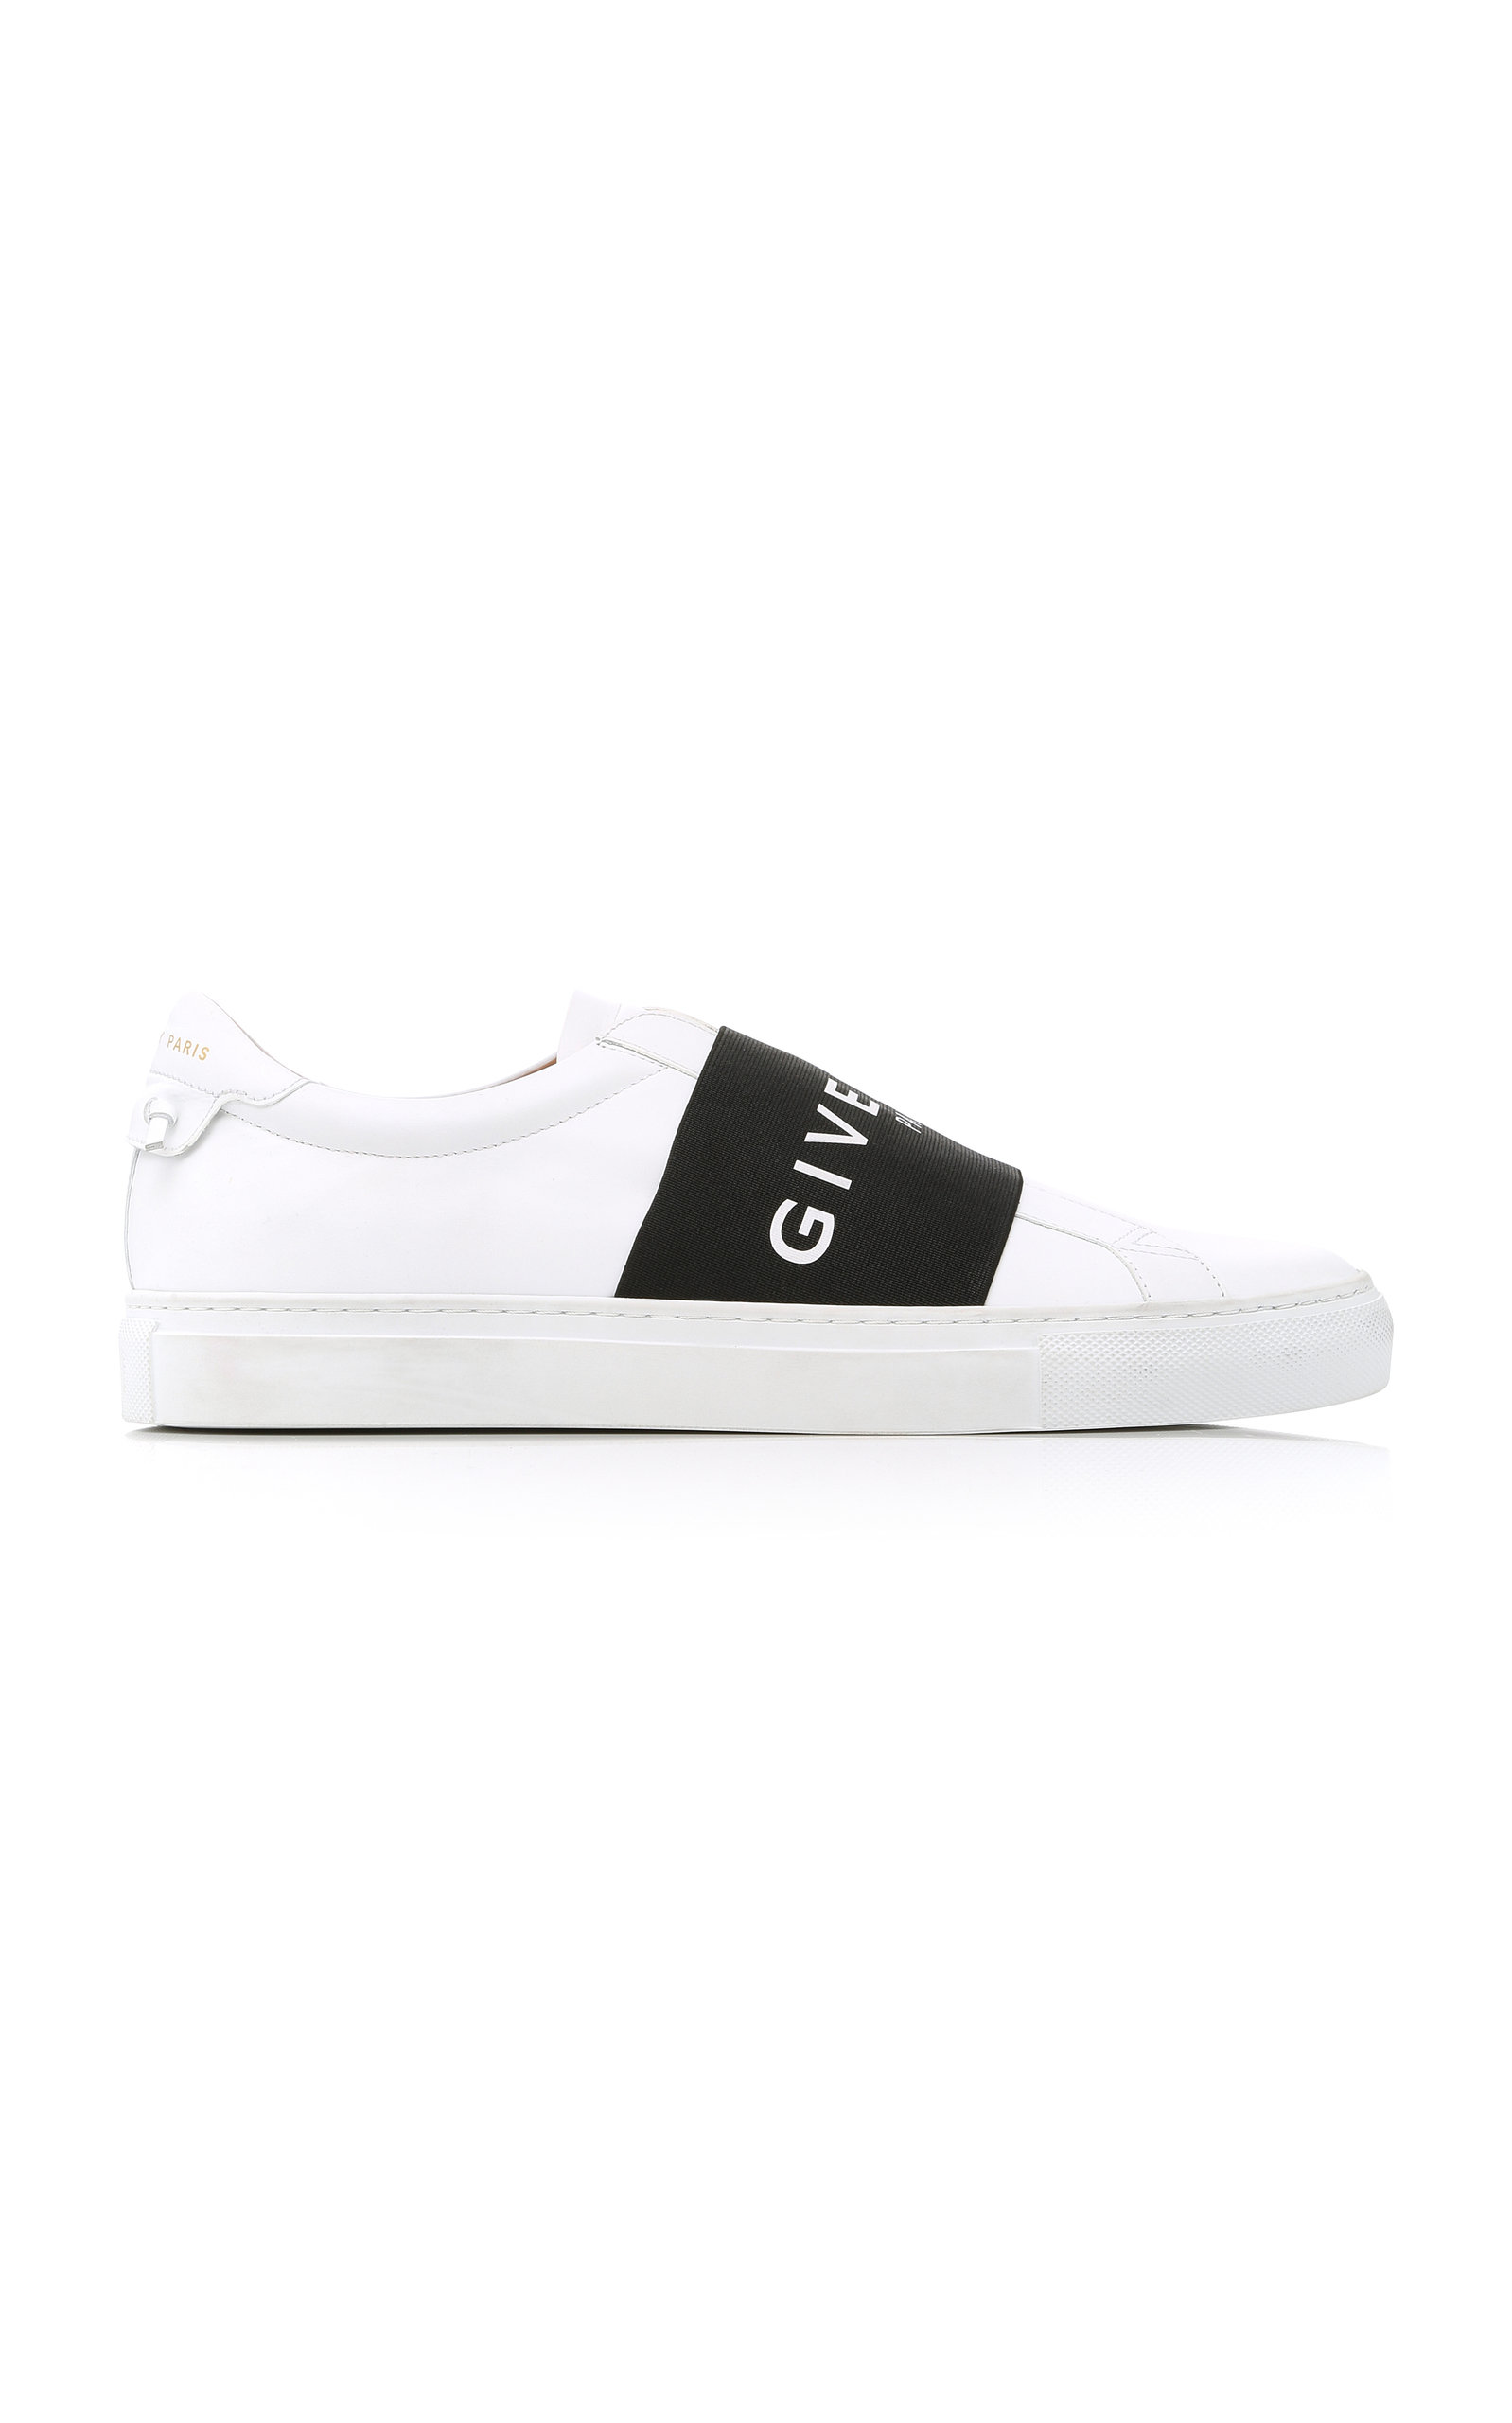 Urban Street Logo Sneakers by Givenchy